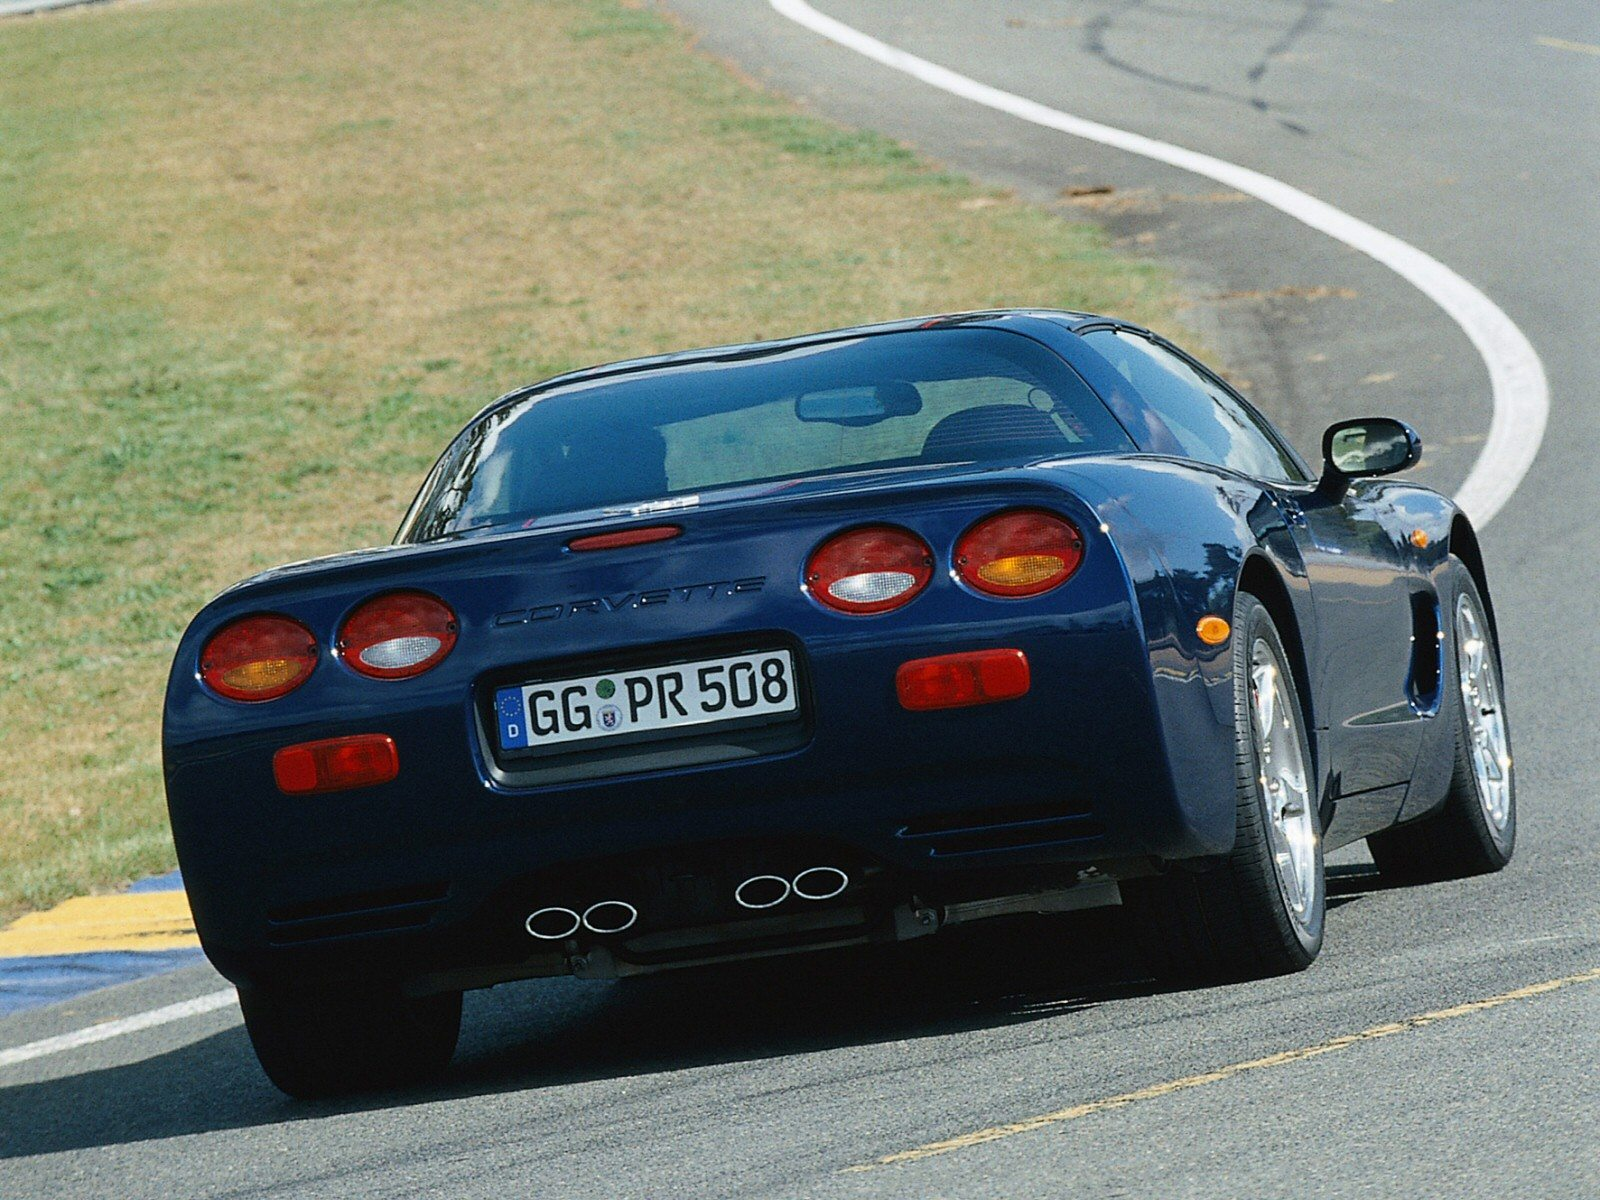 2004 c5 chevrolet corvette image gallery pictures corvette galleries. Black Bedroom Furniture Sets. Home Design Ideas